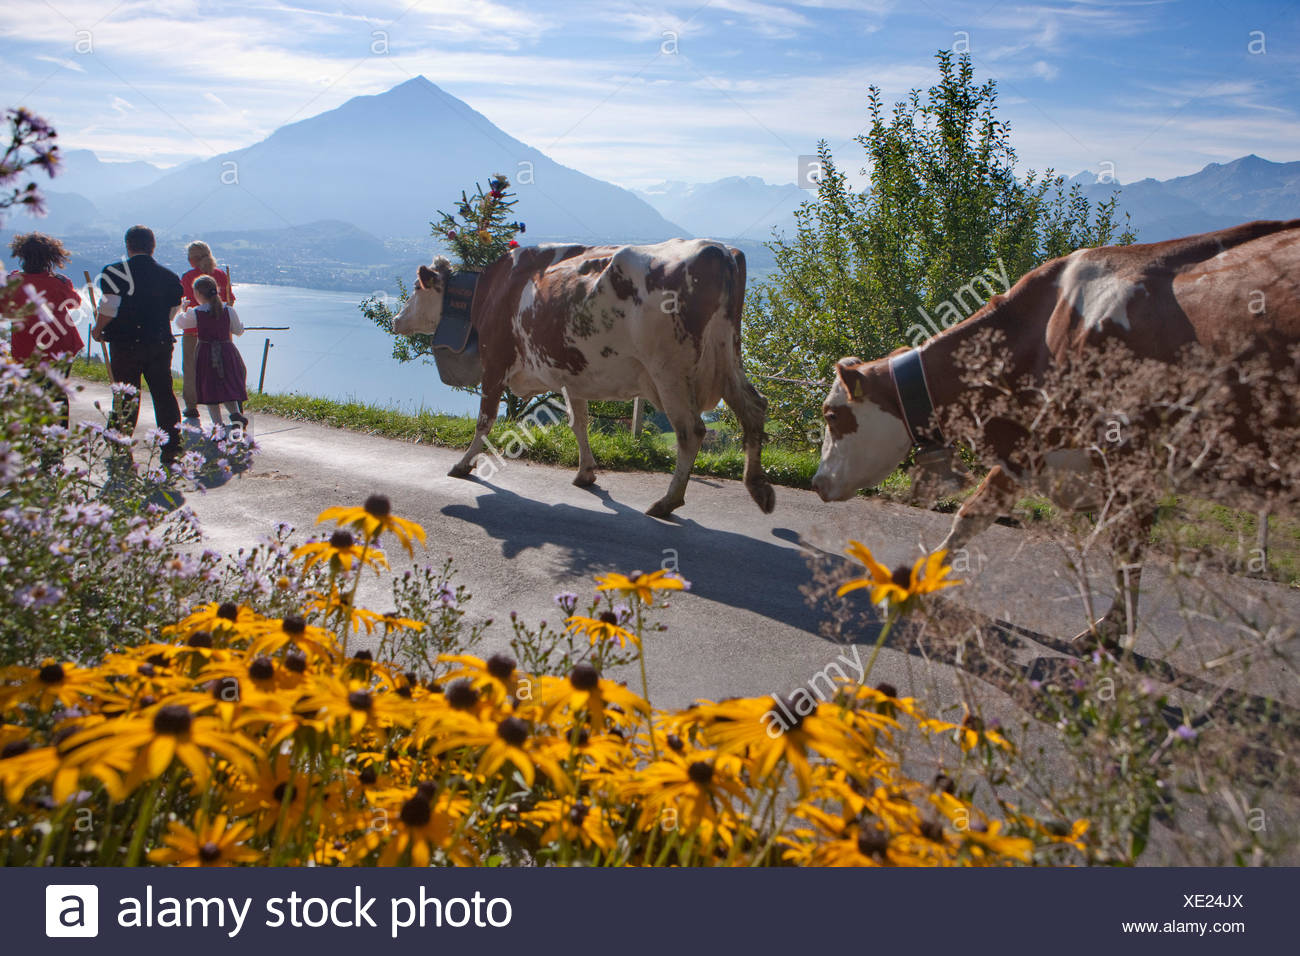 alpine deduction, Justistal, lake of Thun, Niesen, tradition, folklore, national costumes, agriculture, national costumes, natio - Stock Image